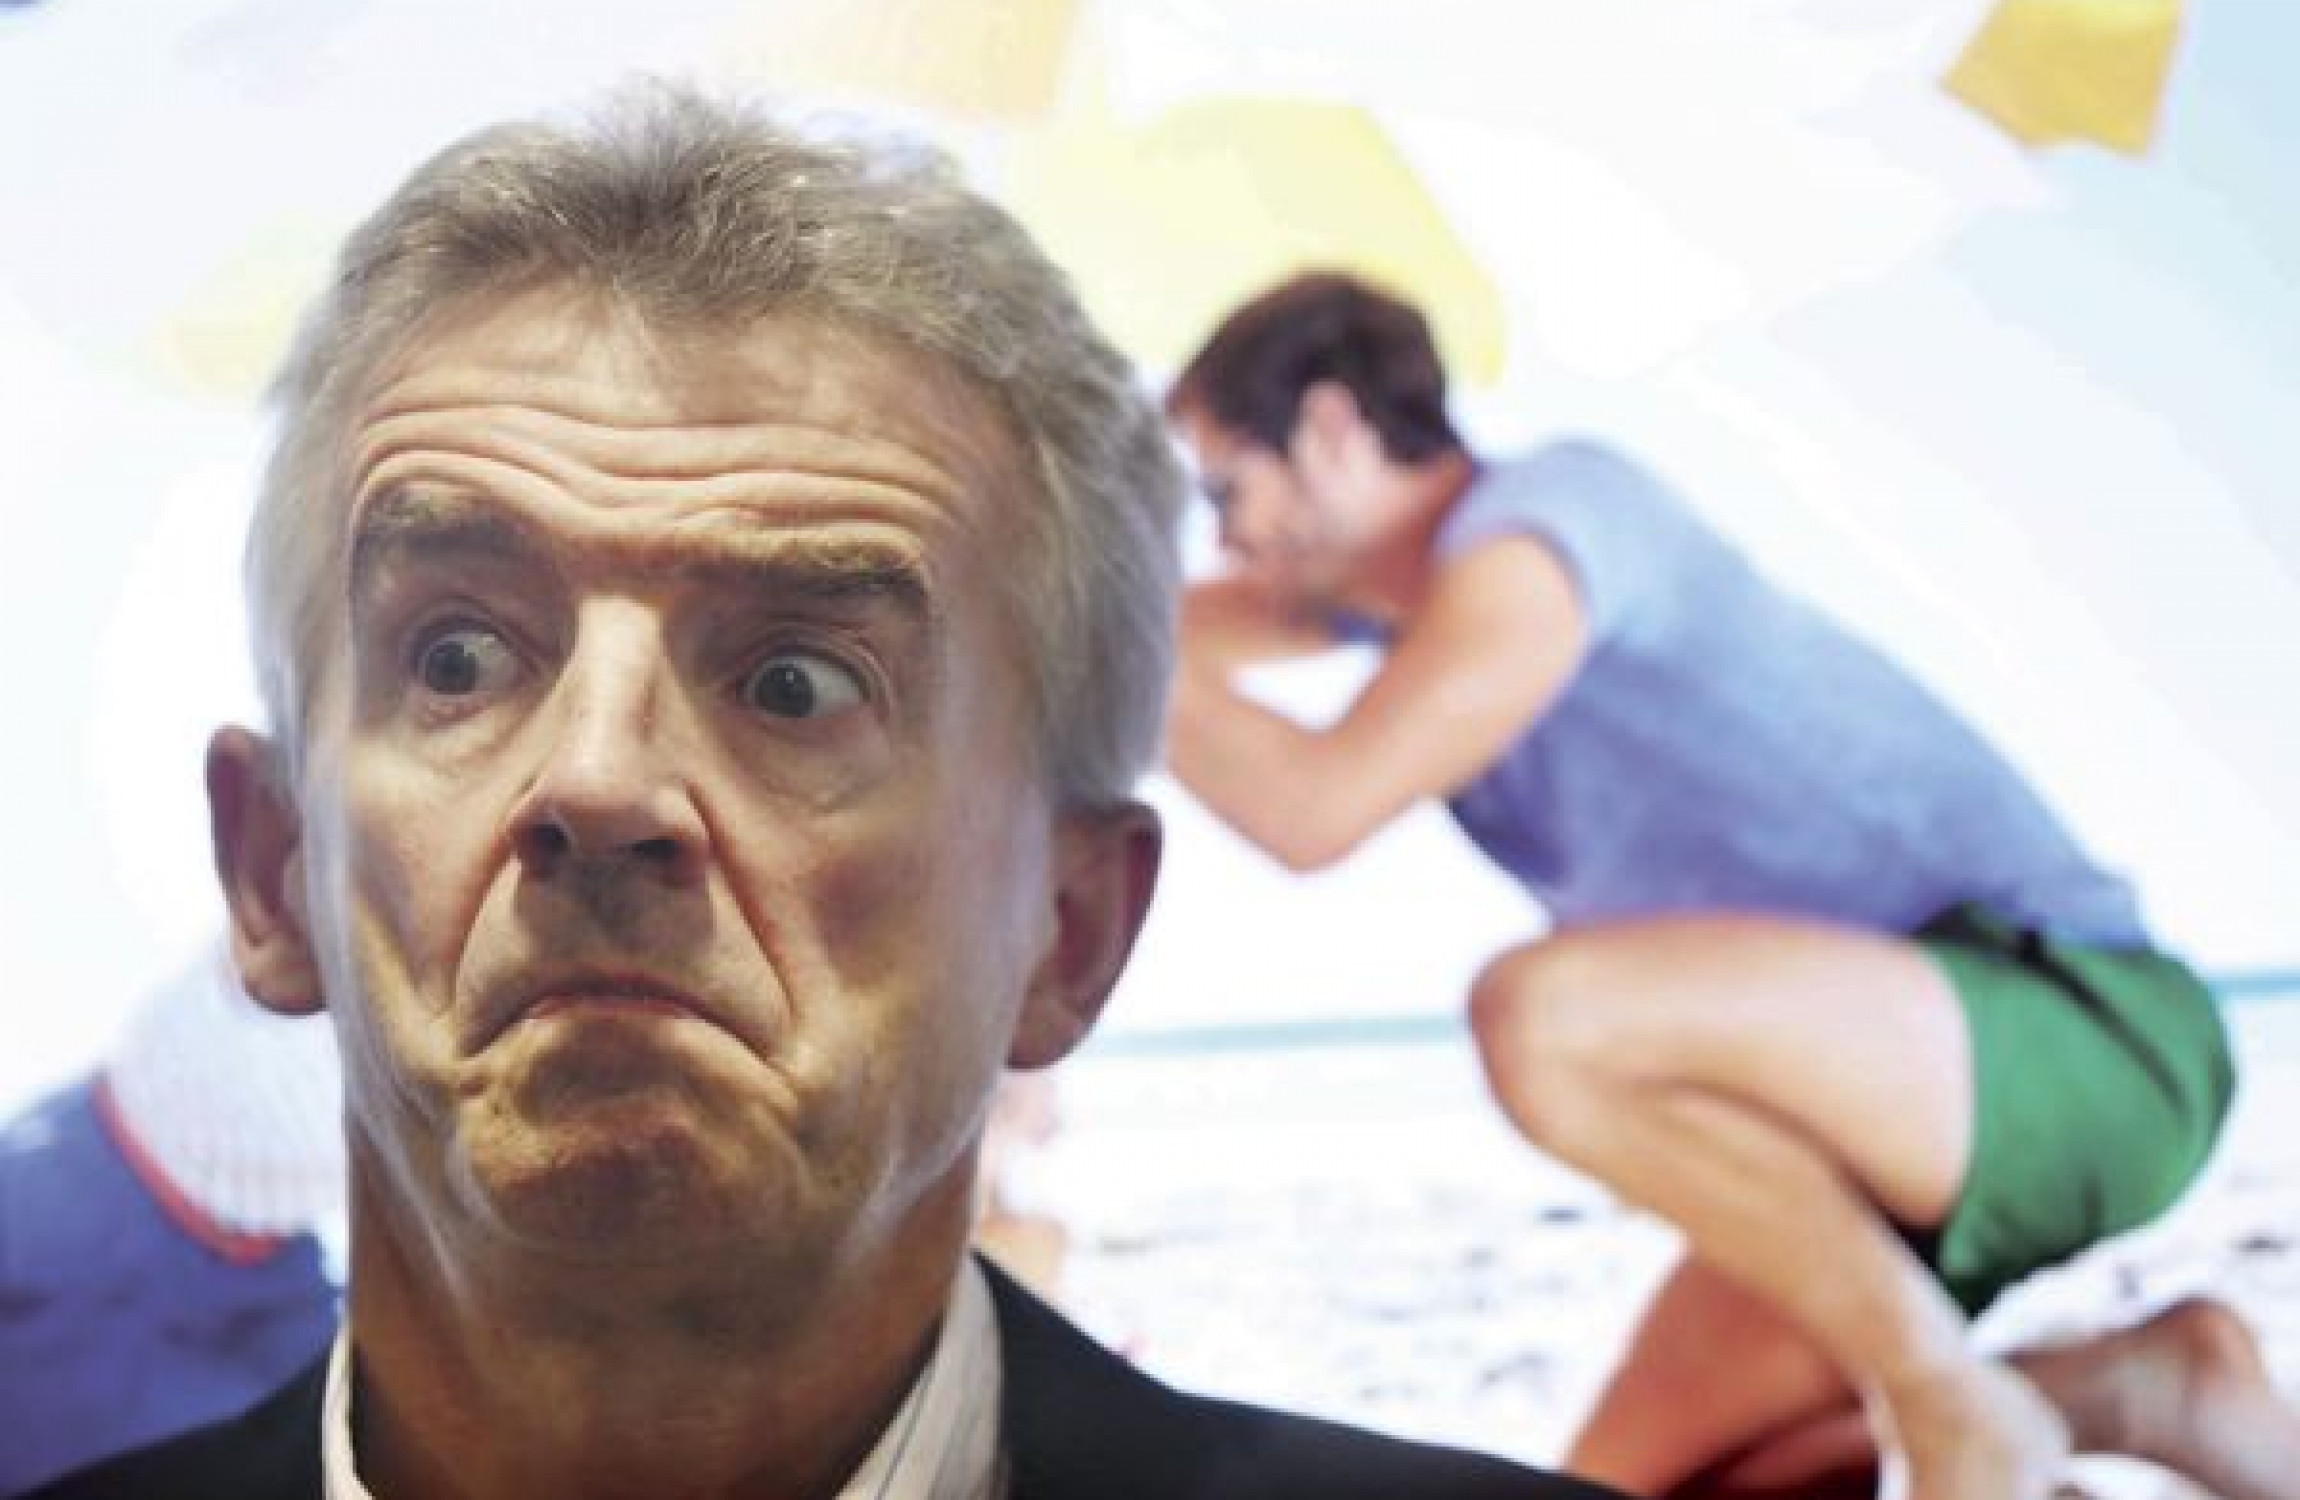 Ryanair executive quits after flights chaos